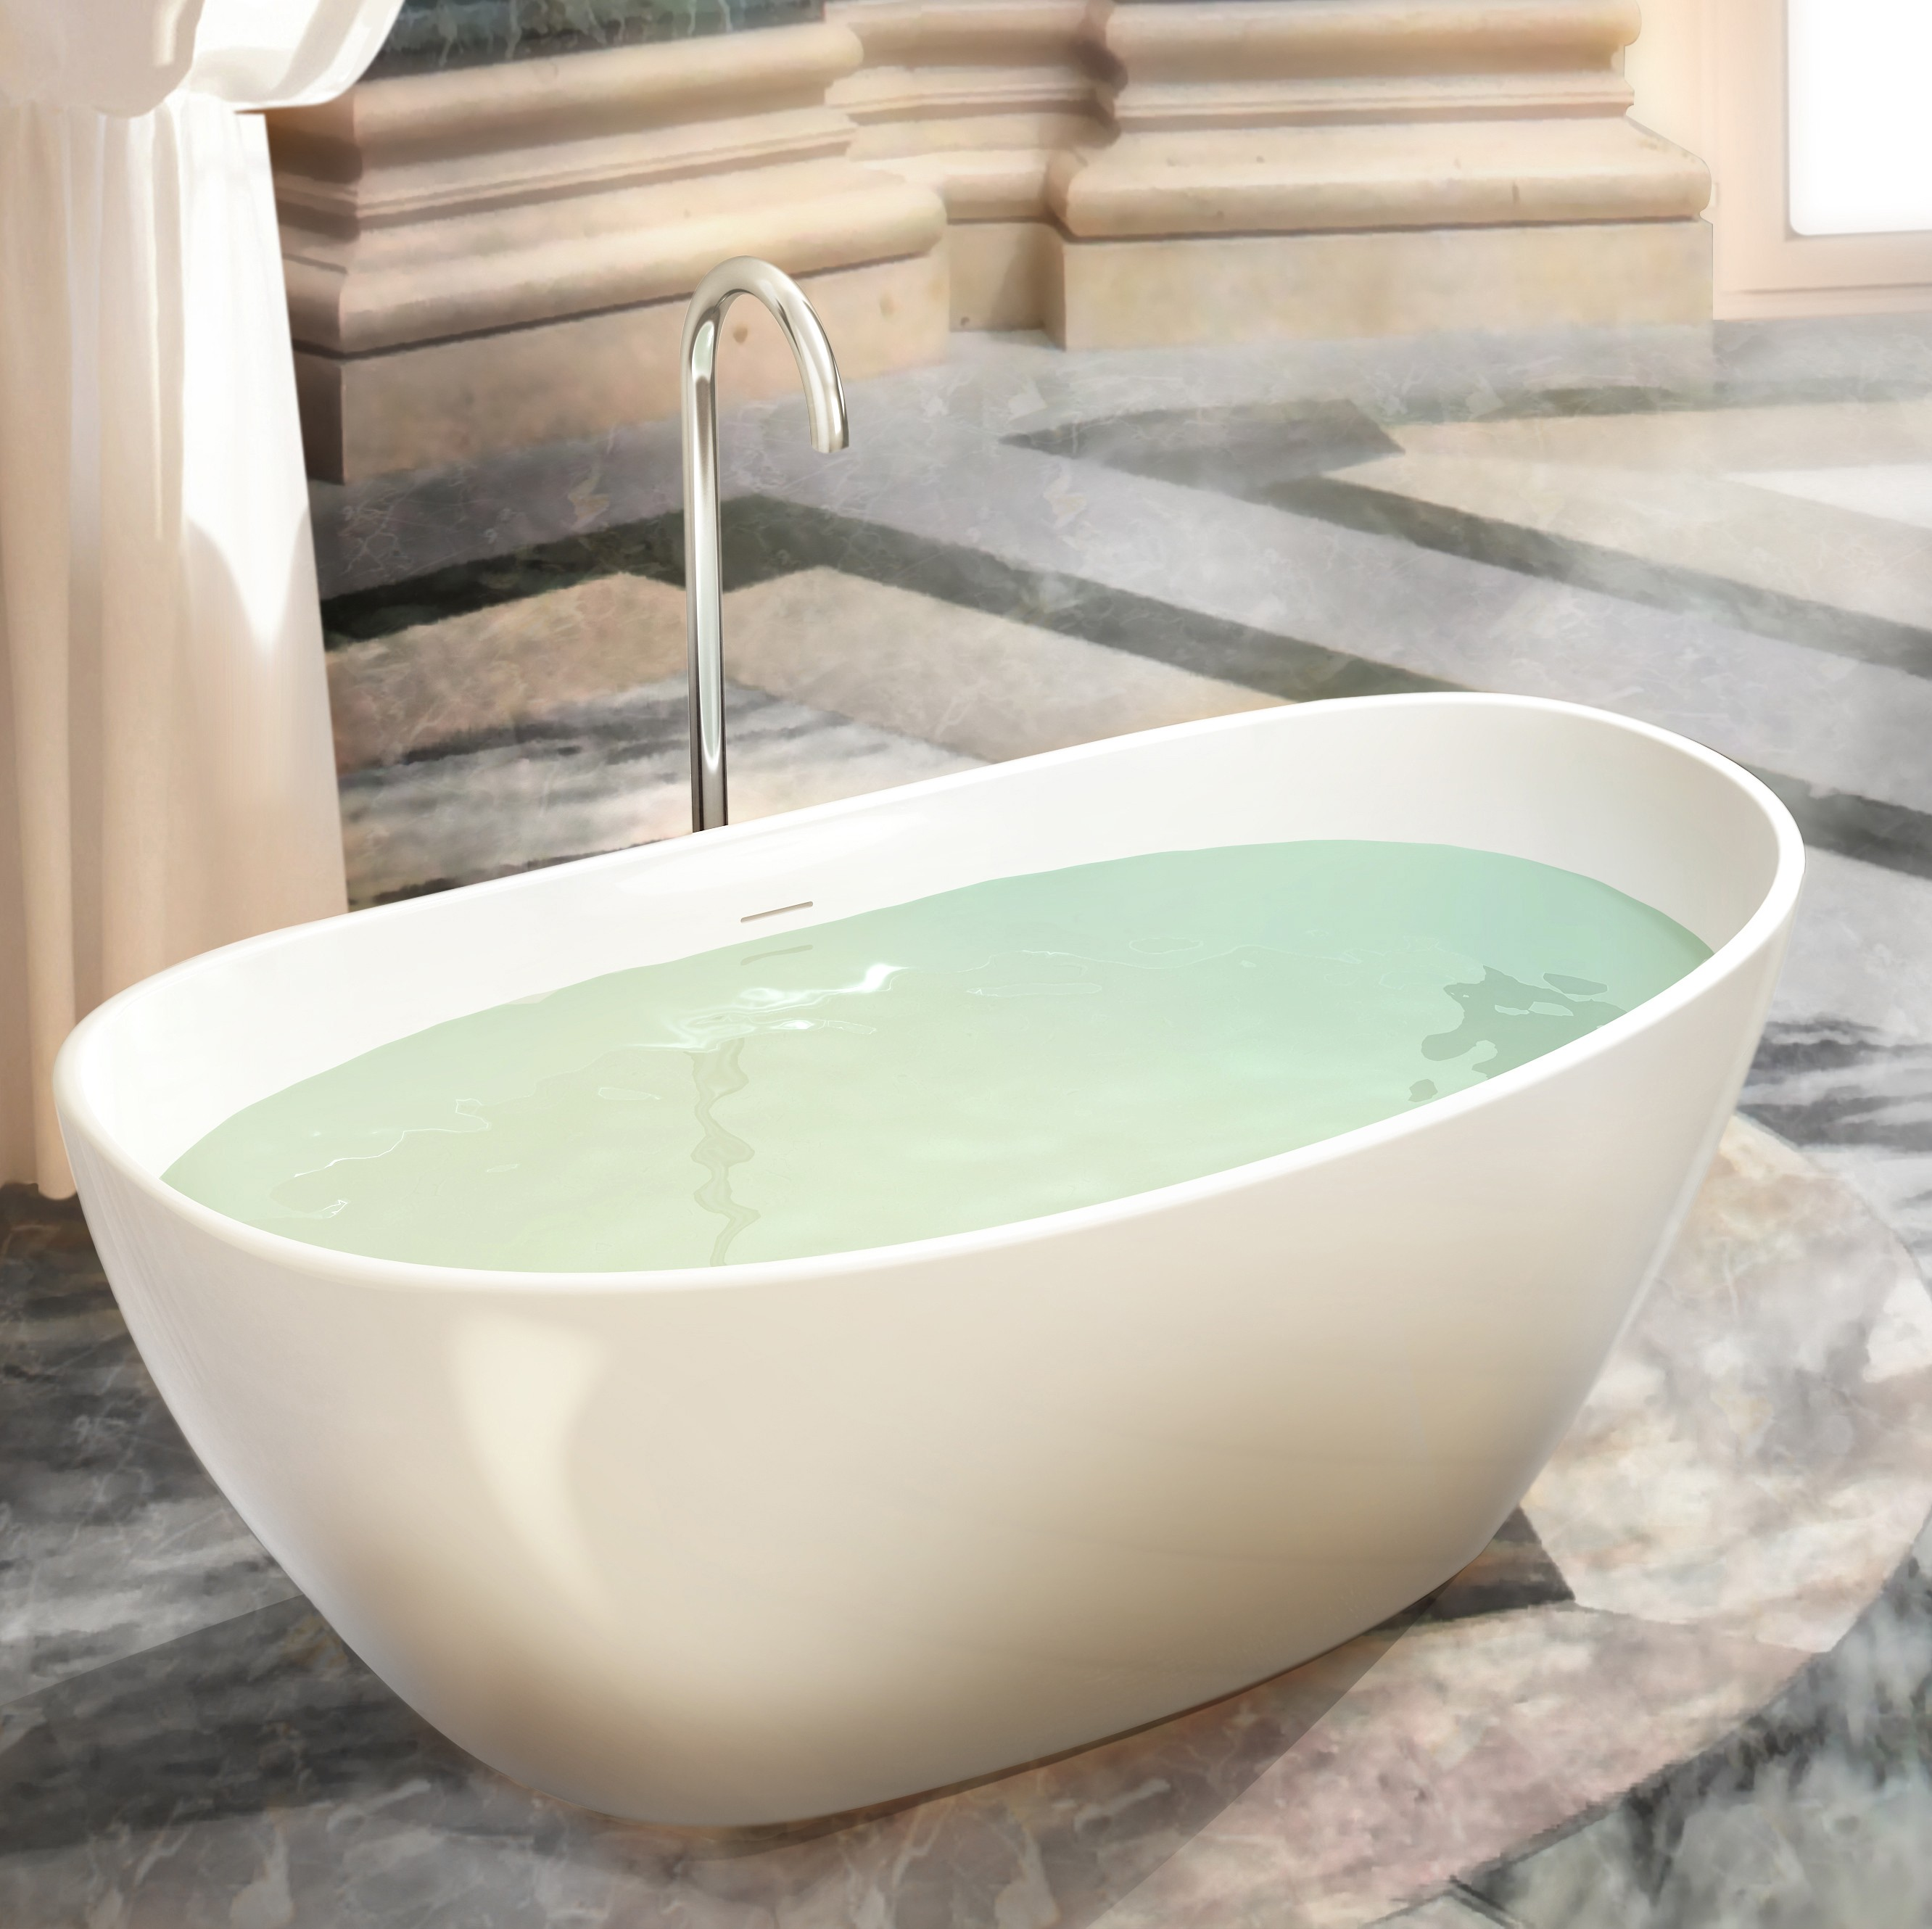 Virta Freestanding Solid Surface Stone Tubs - Toronto, Canada - Virta